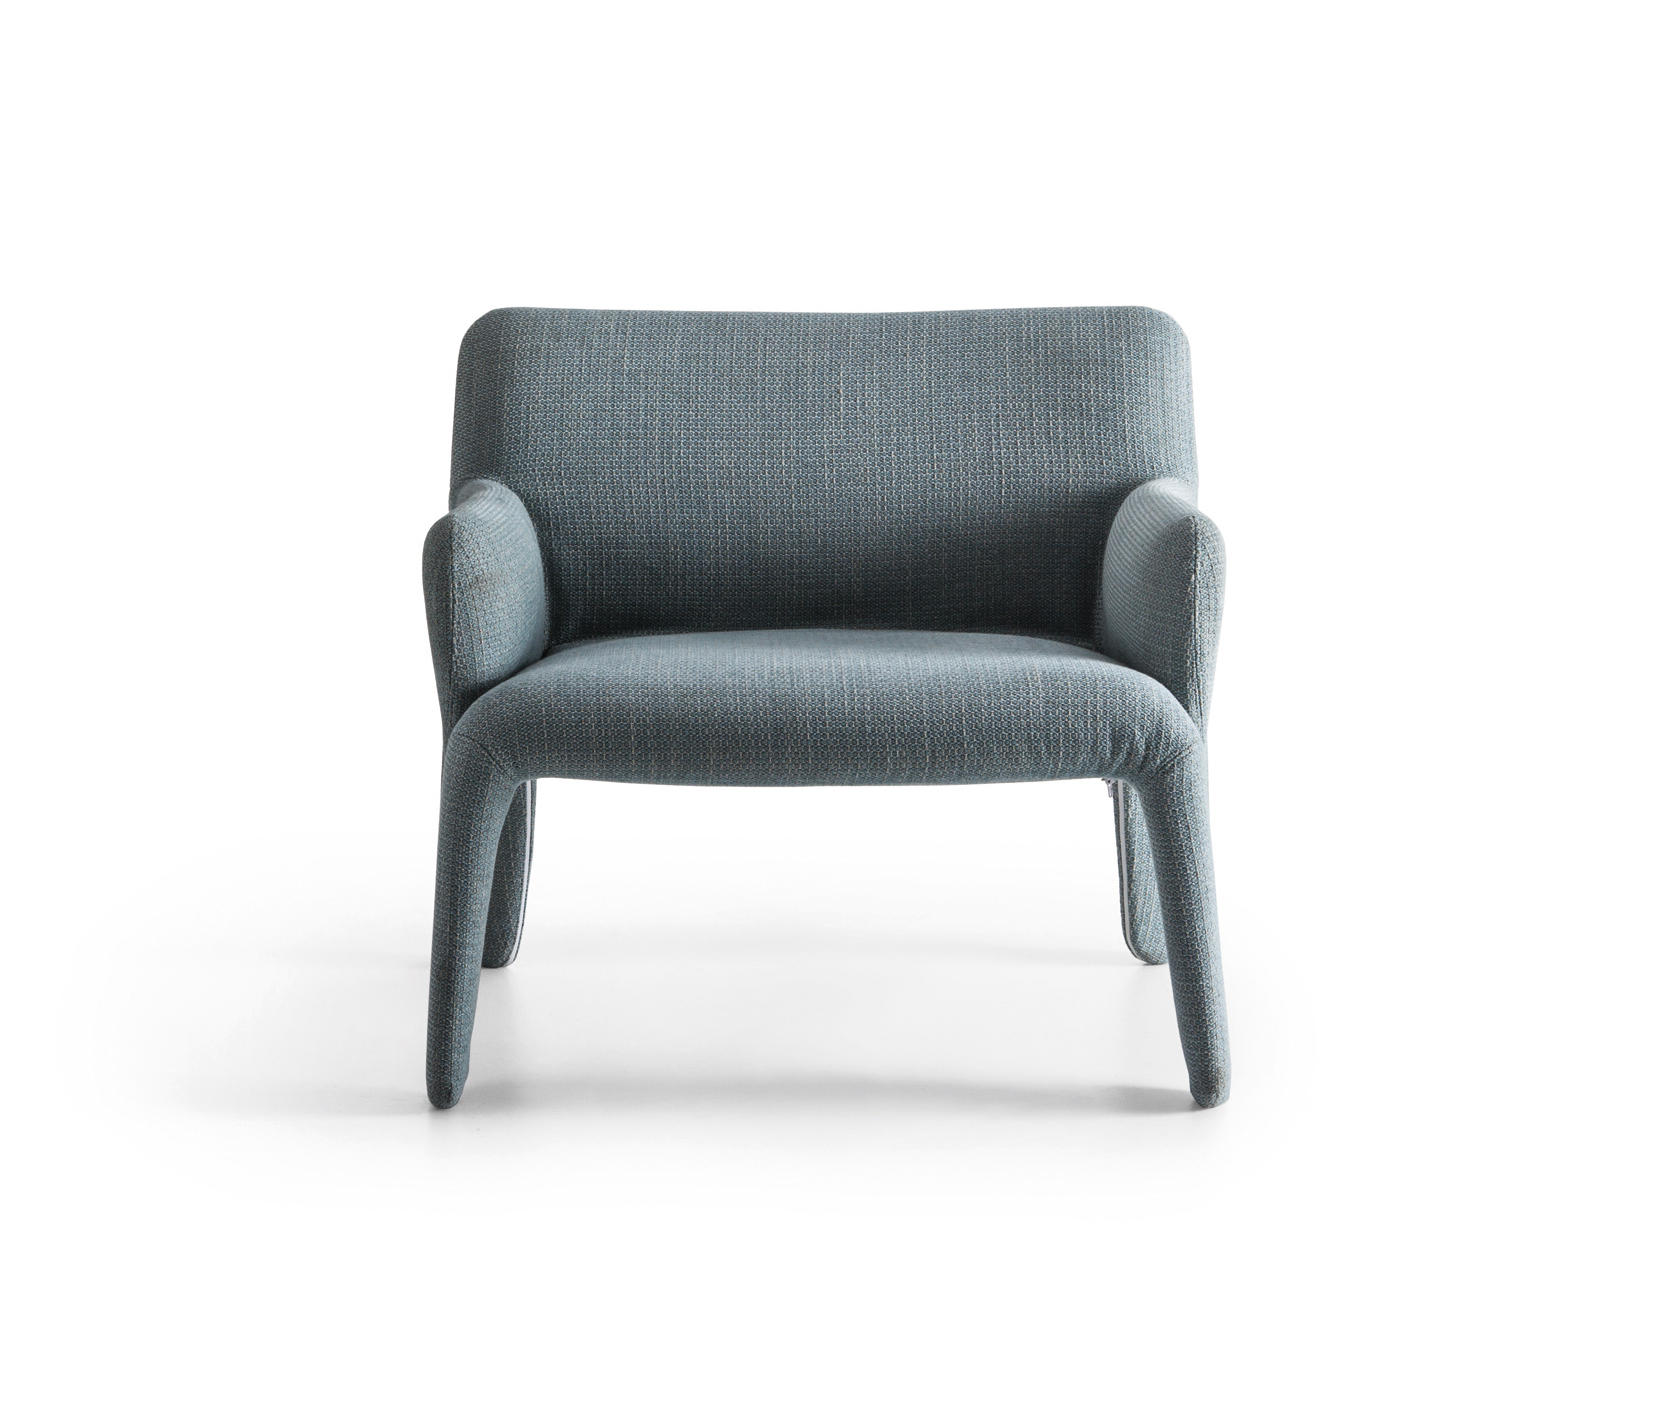 Molteni & C Sessel Glove Up Armchair Sessel Von Molteni C Architonic